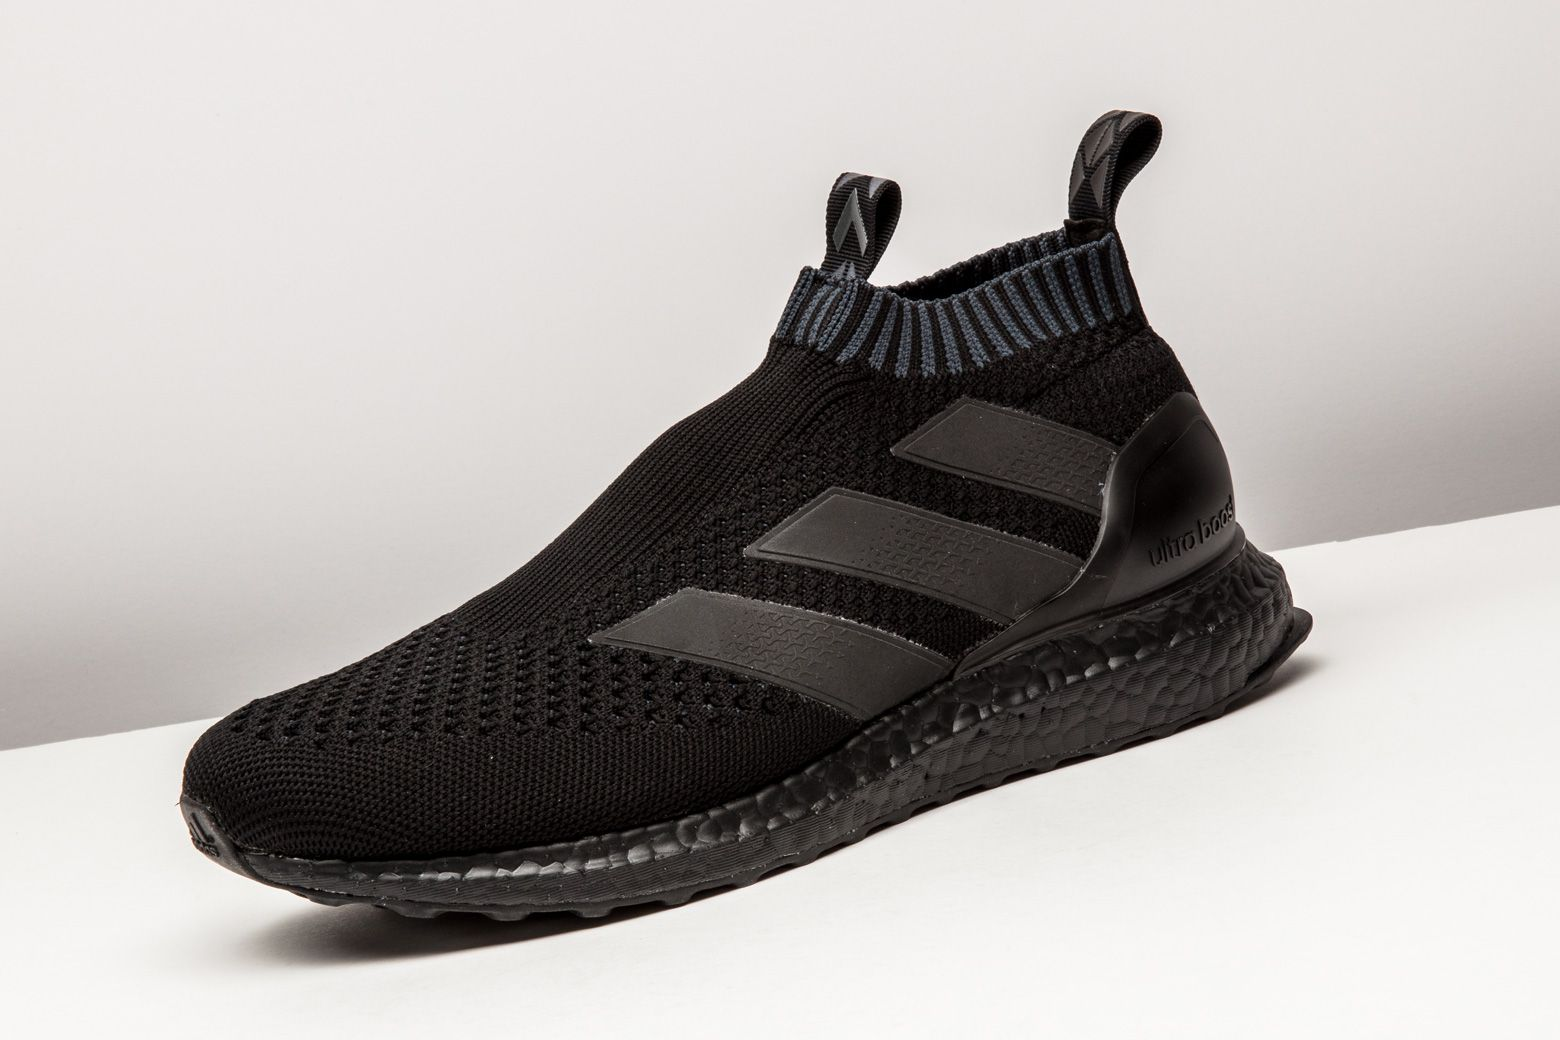 buy online 6c939 c5de9 This murdered-out triple black version of the adidas ACE 16+ Purecontrol  Ultra Boost